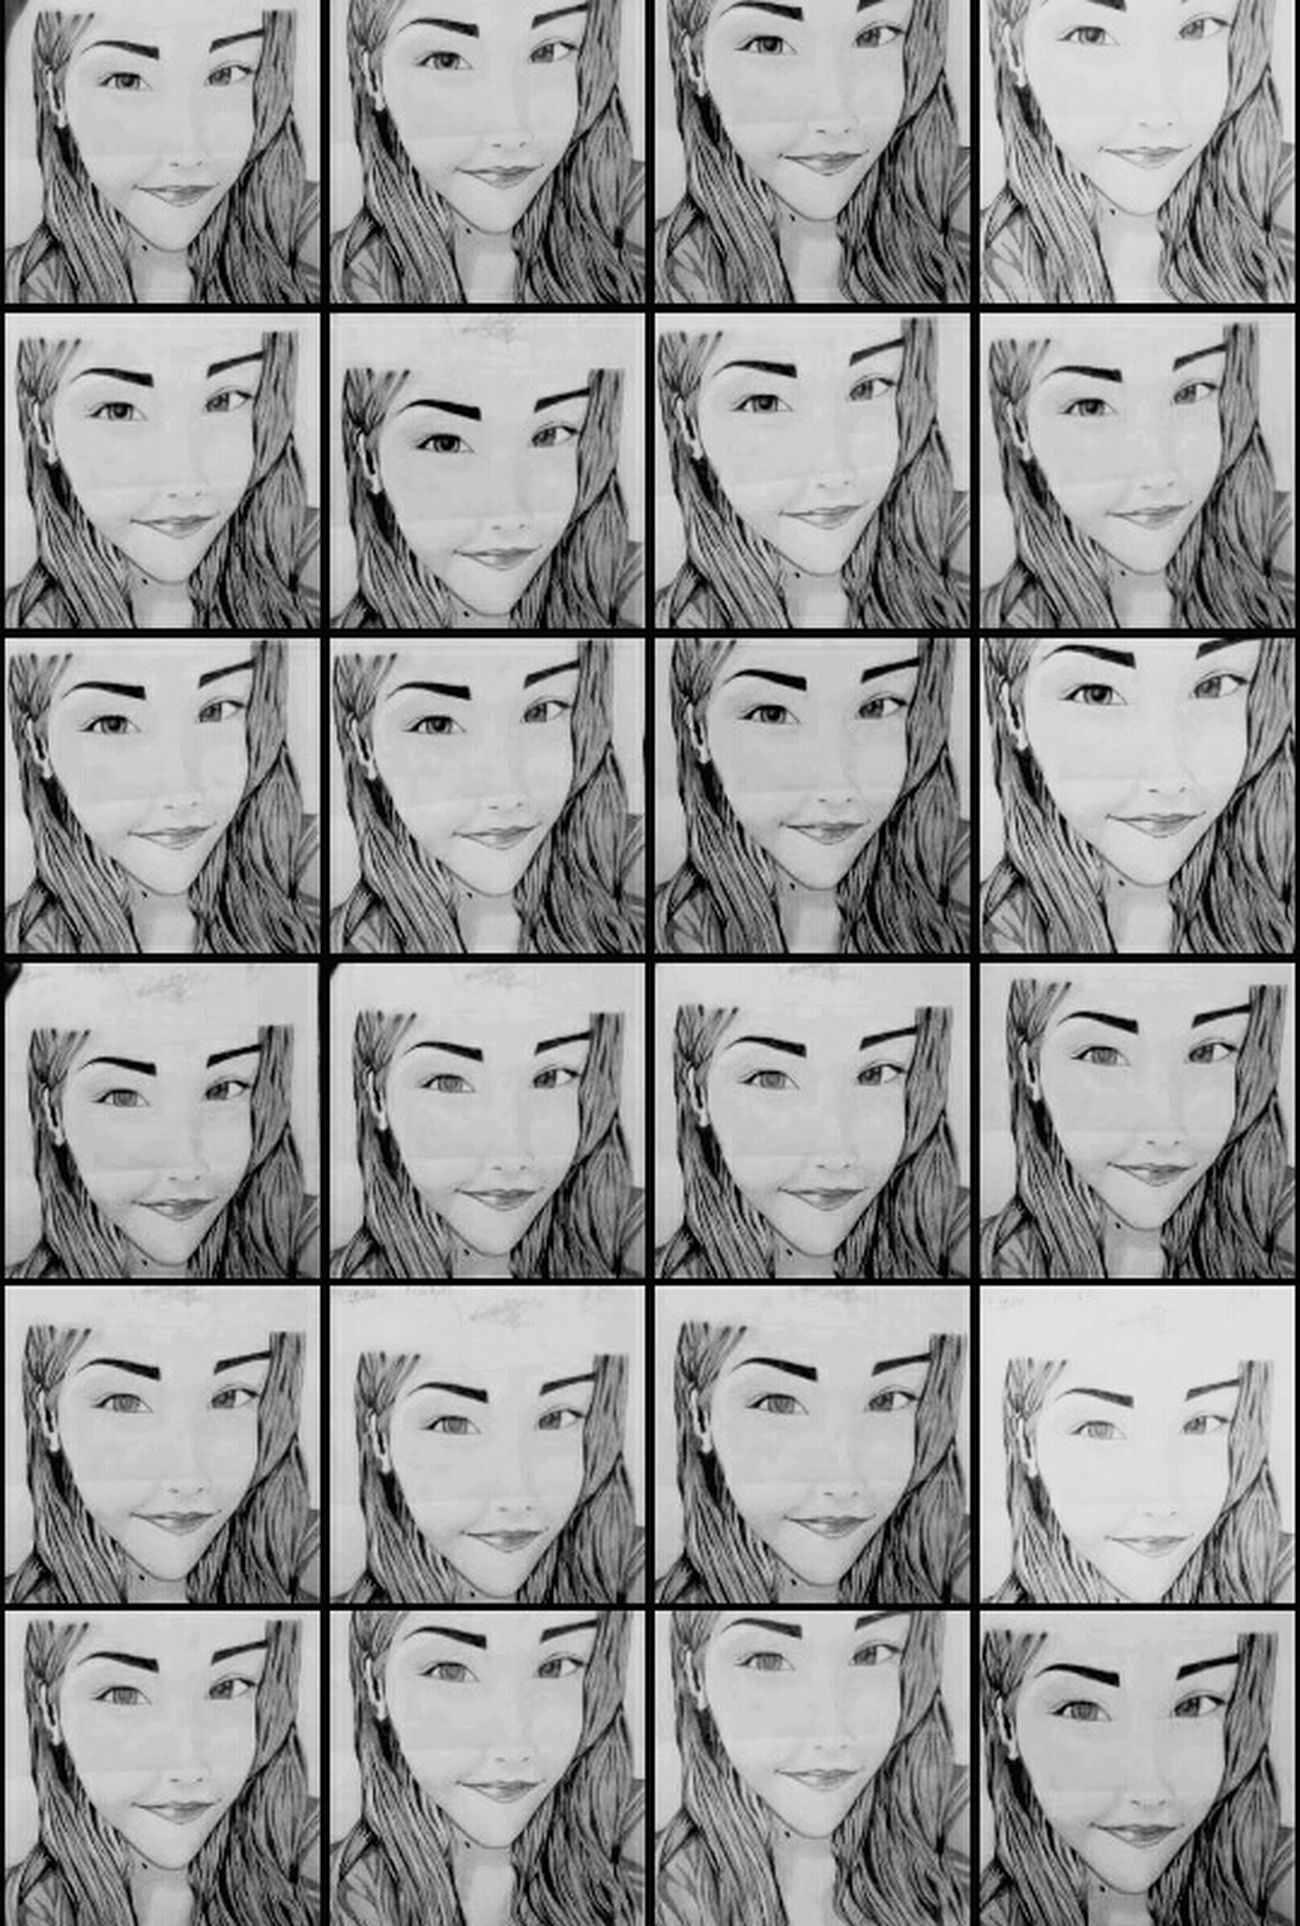 Just a beutiful face, whith a sad history My Heaven My Heaven ♡.♡ Enjoying Life Hello World In Heaven Draws My Drawings Drawing Art, Drawing, Creativity My Draw ♥ My Drawings ✏ Drawings Hi!